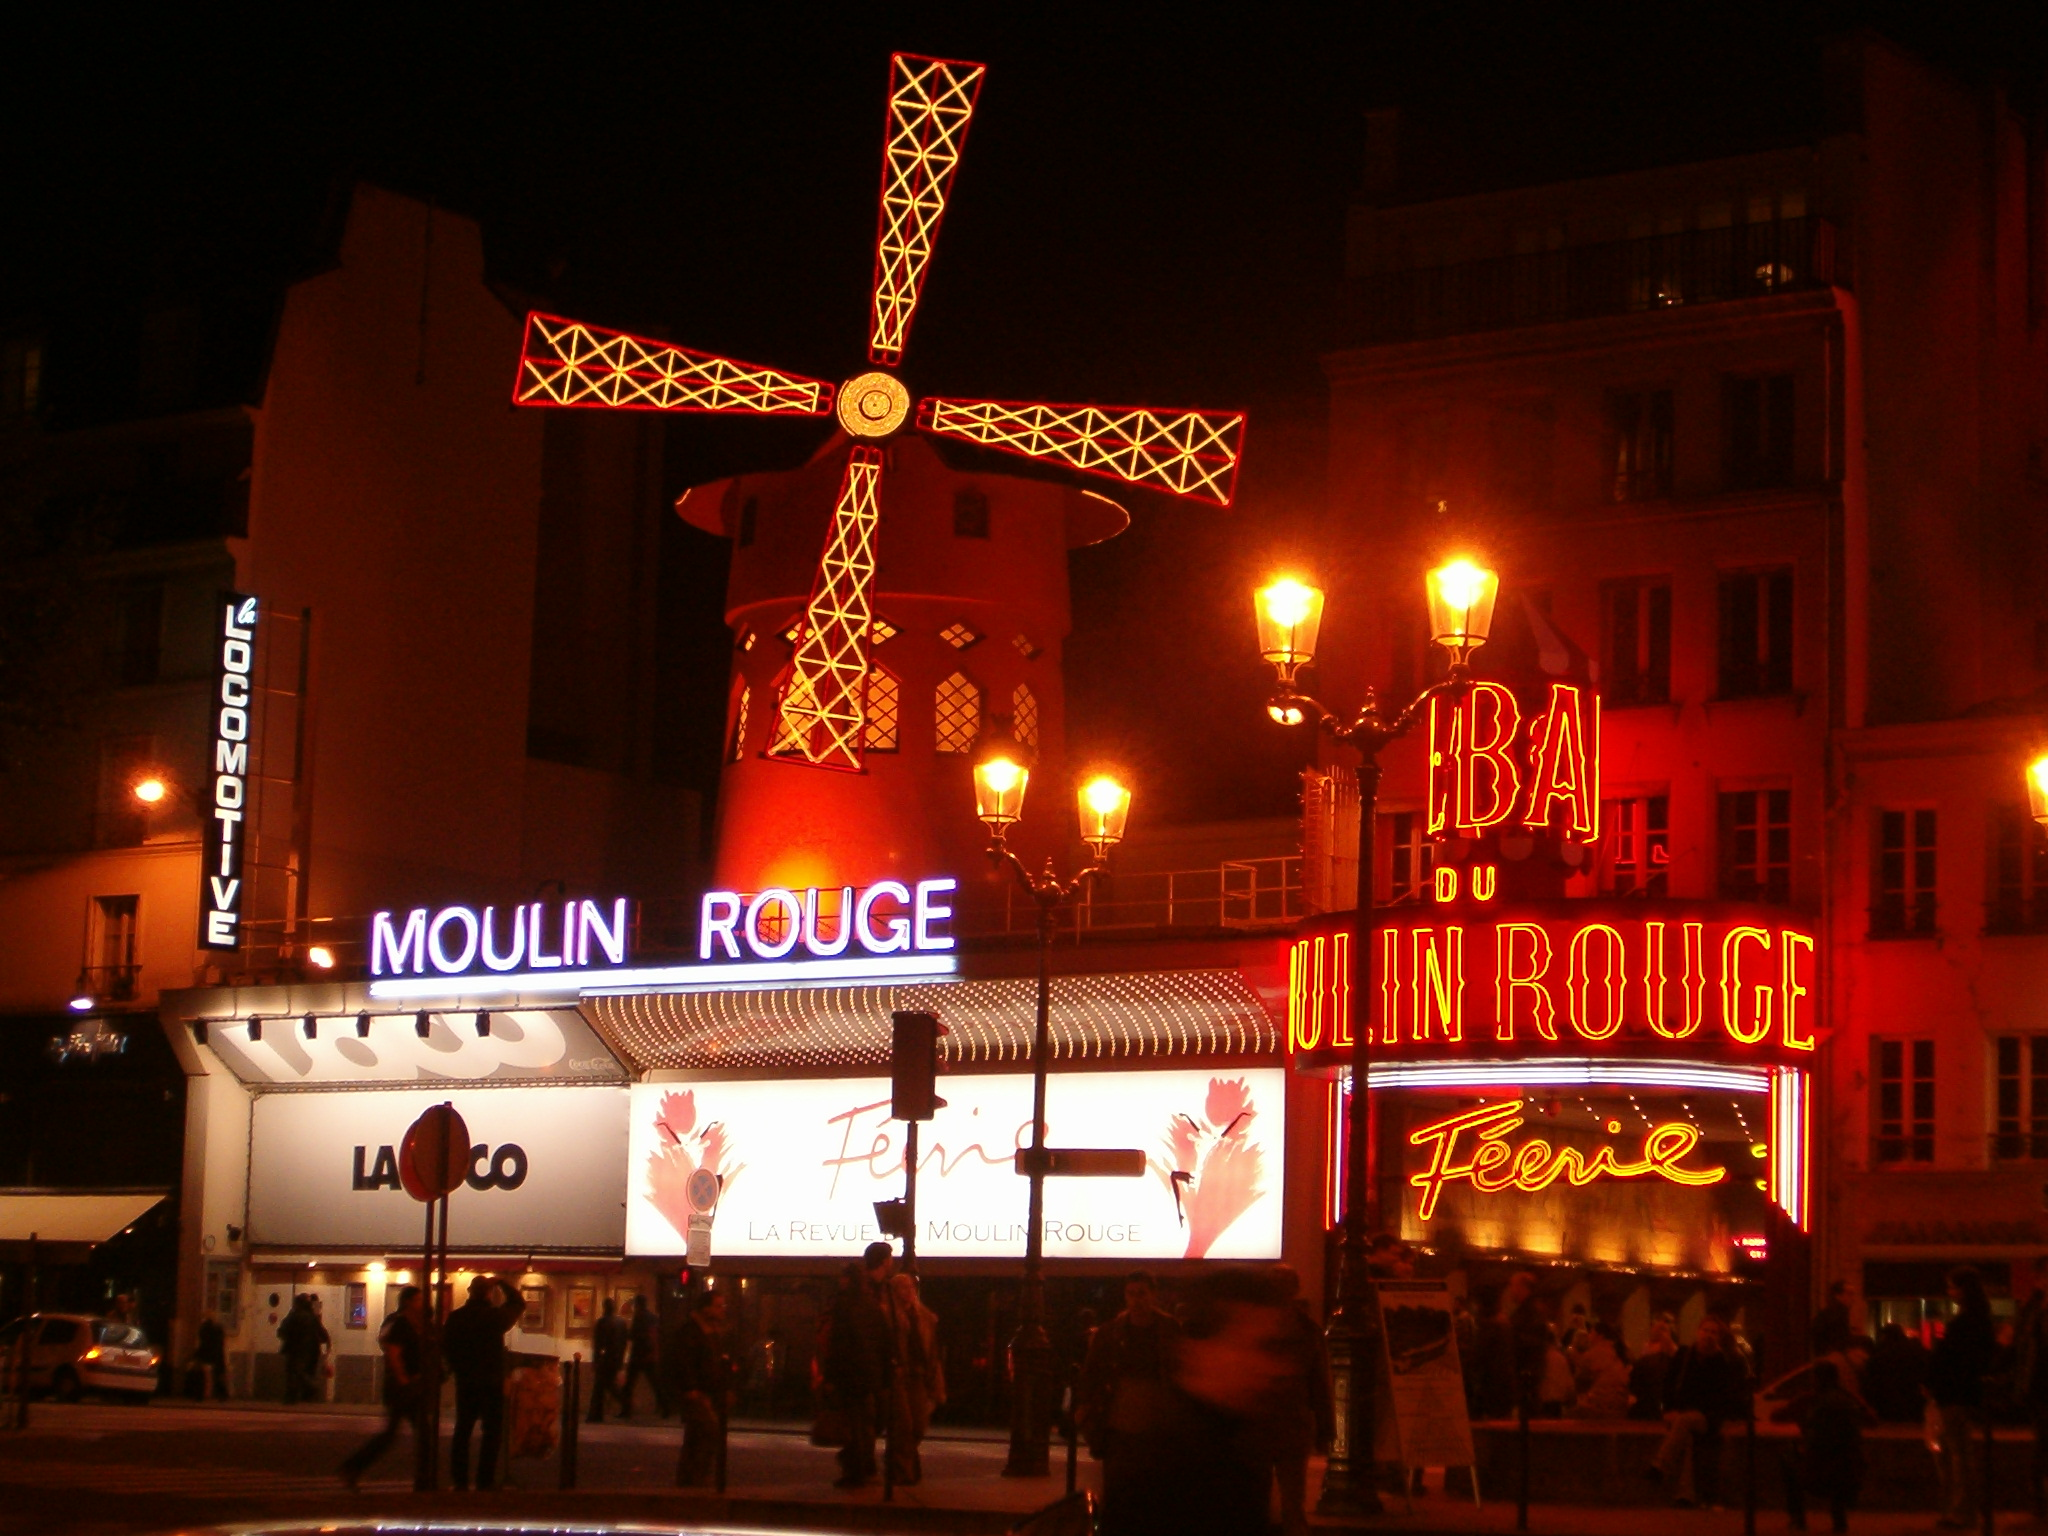 http://onechroniqueshow.com/wp-content/uploads/2013/01/Moulin-Rouge.jpg